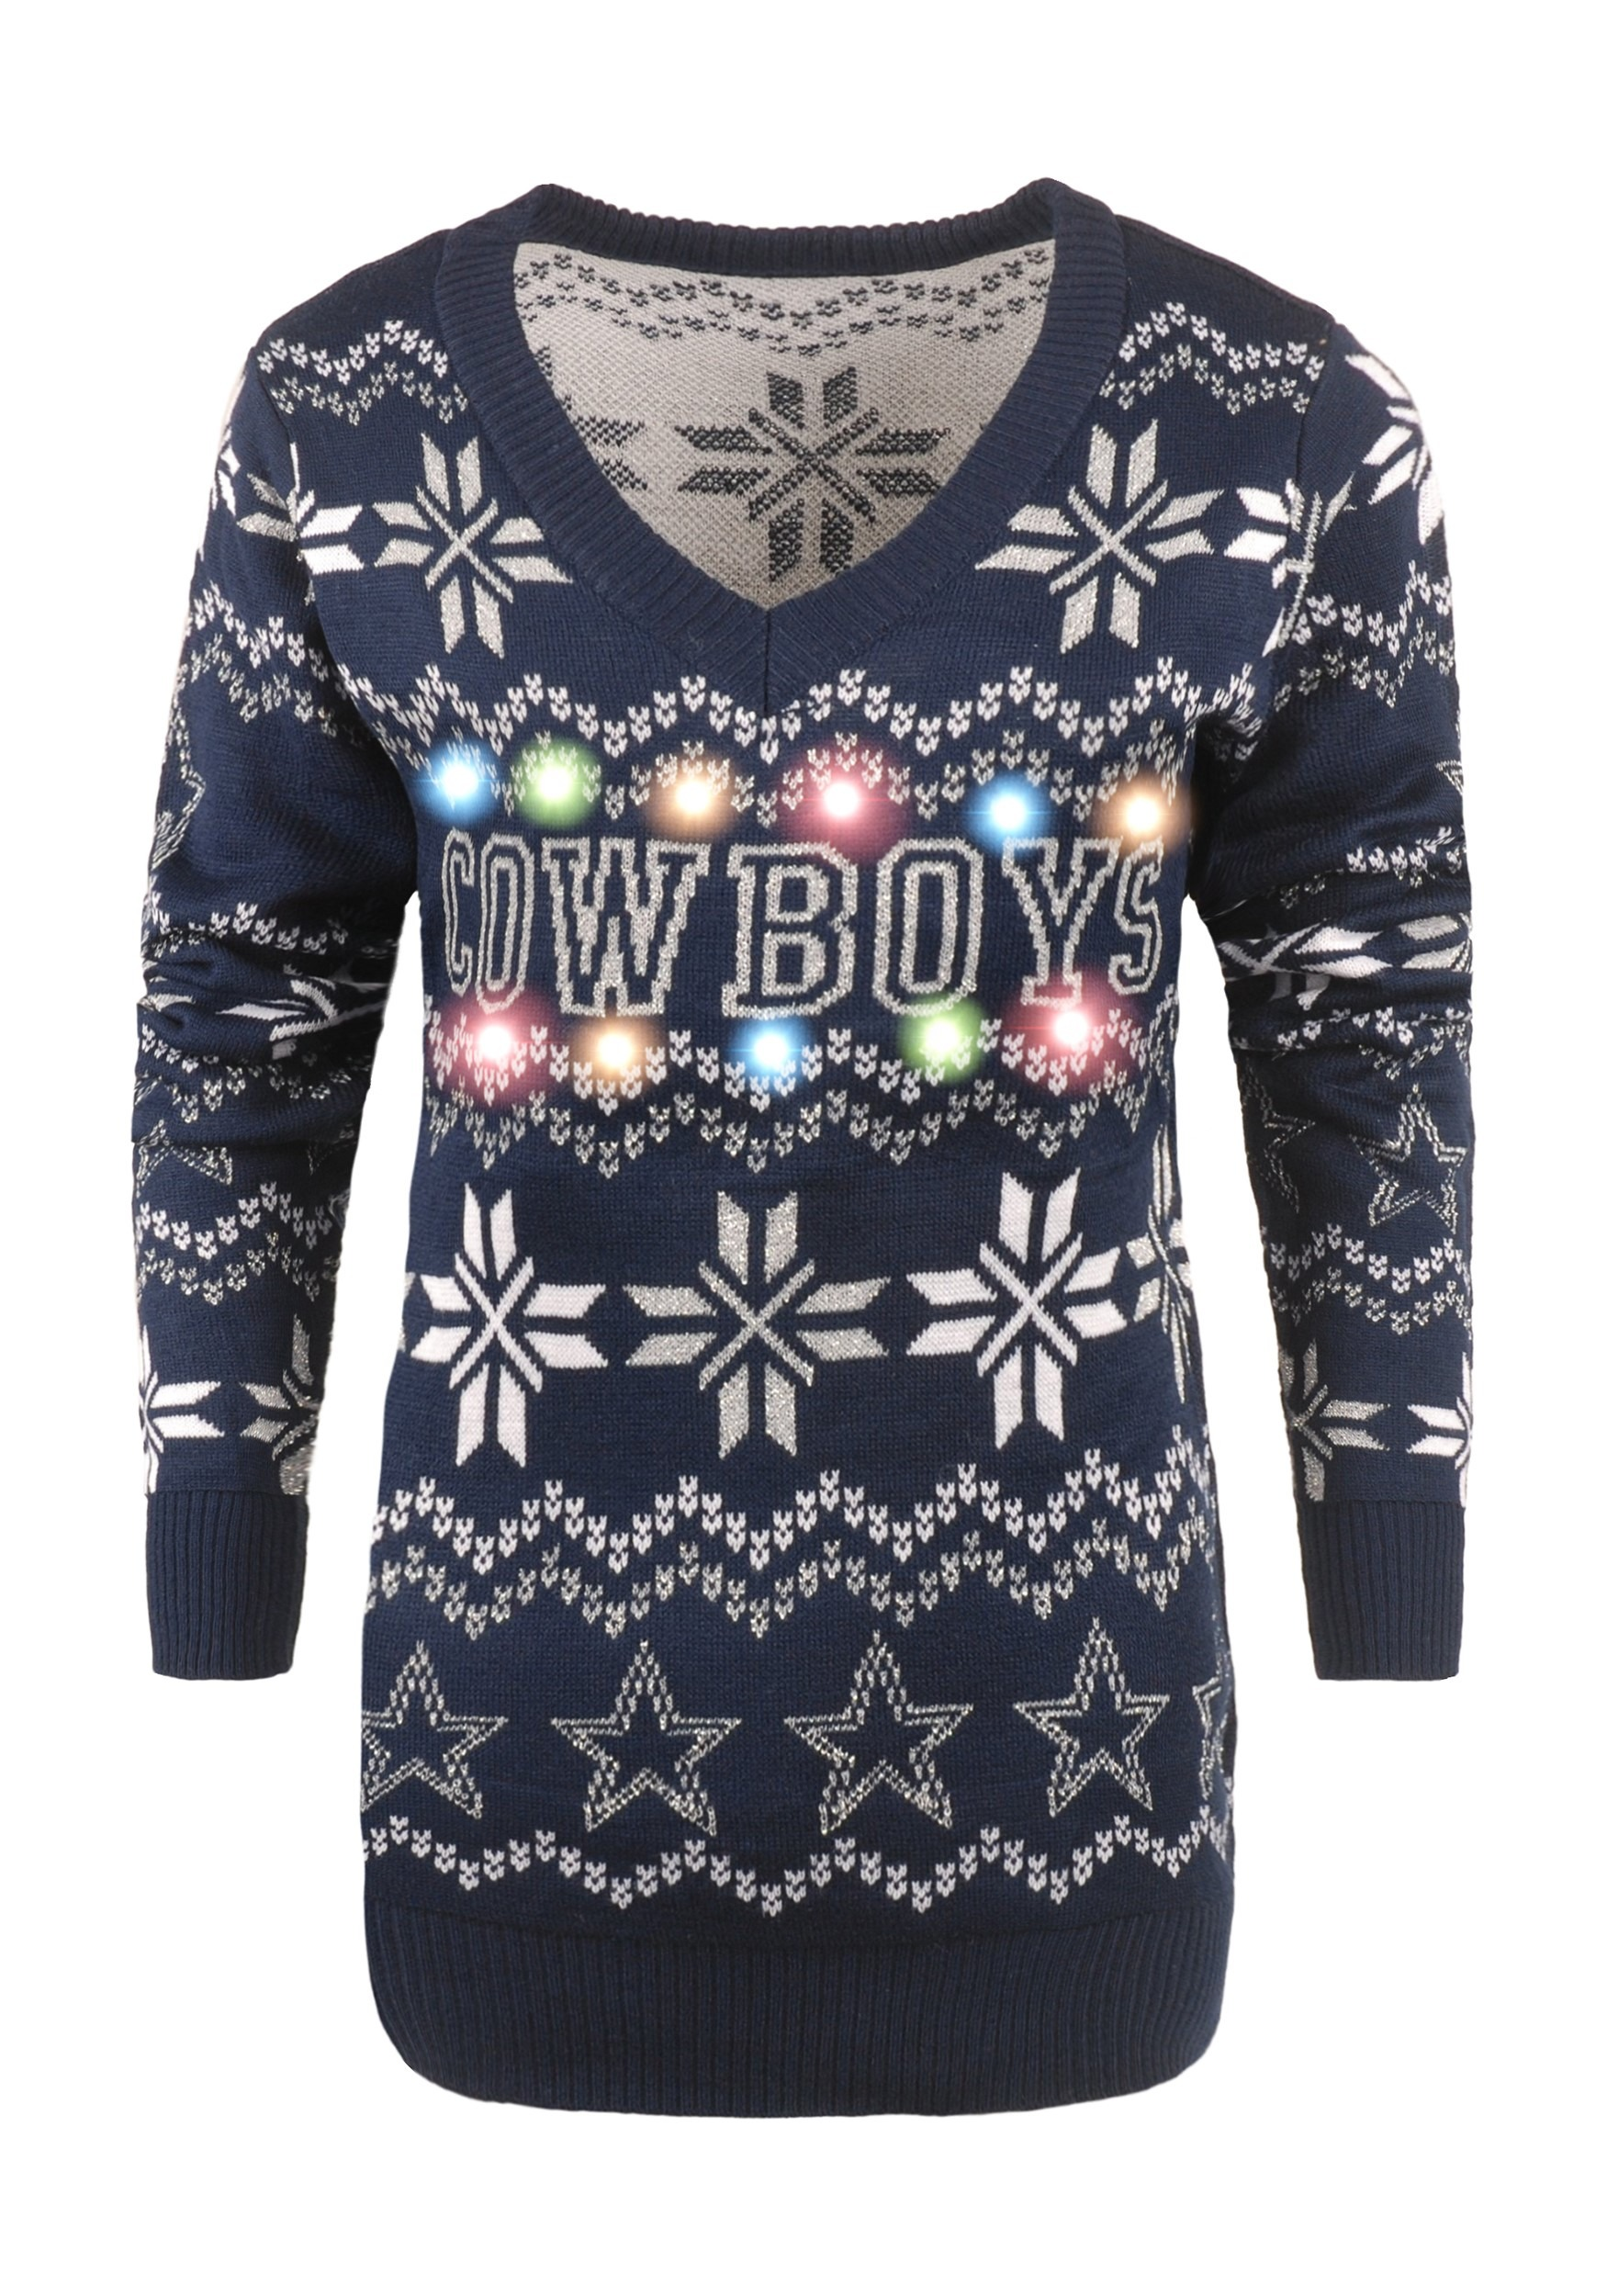 wholesale dealer 4ae9b 68396 Dallas Cowboys Womens Light Up V-Neck Ugly Christmas Sweater